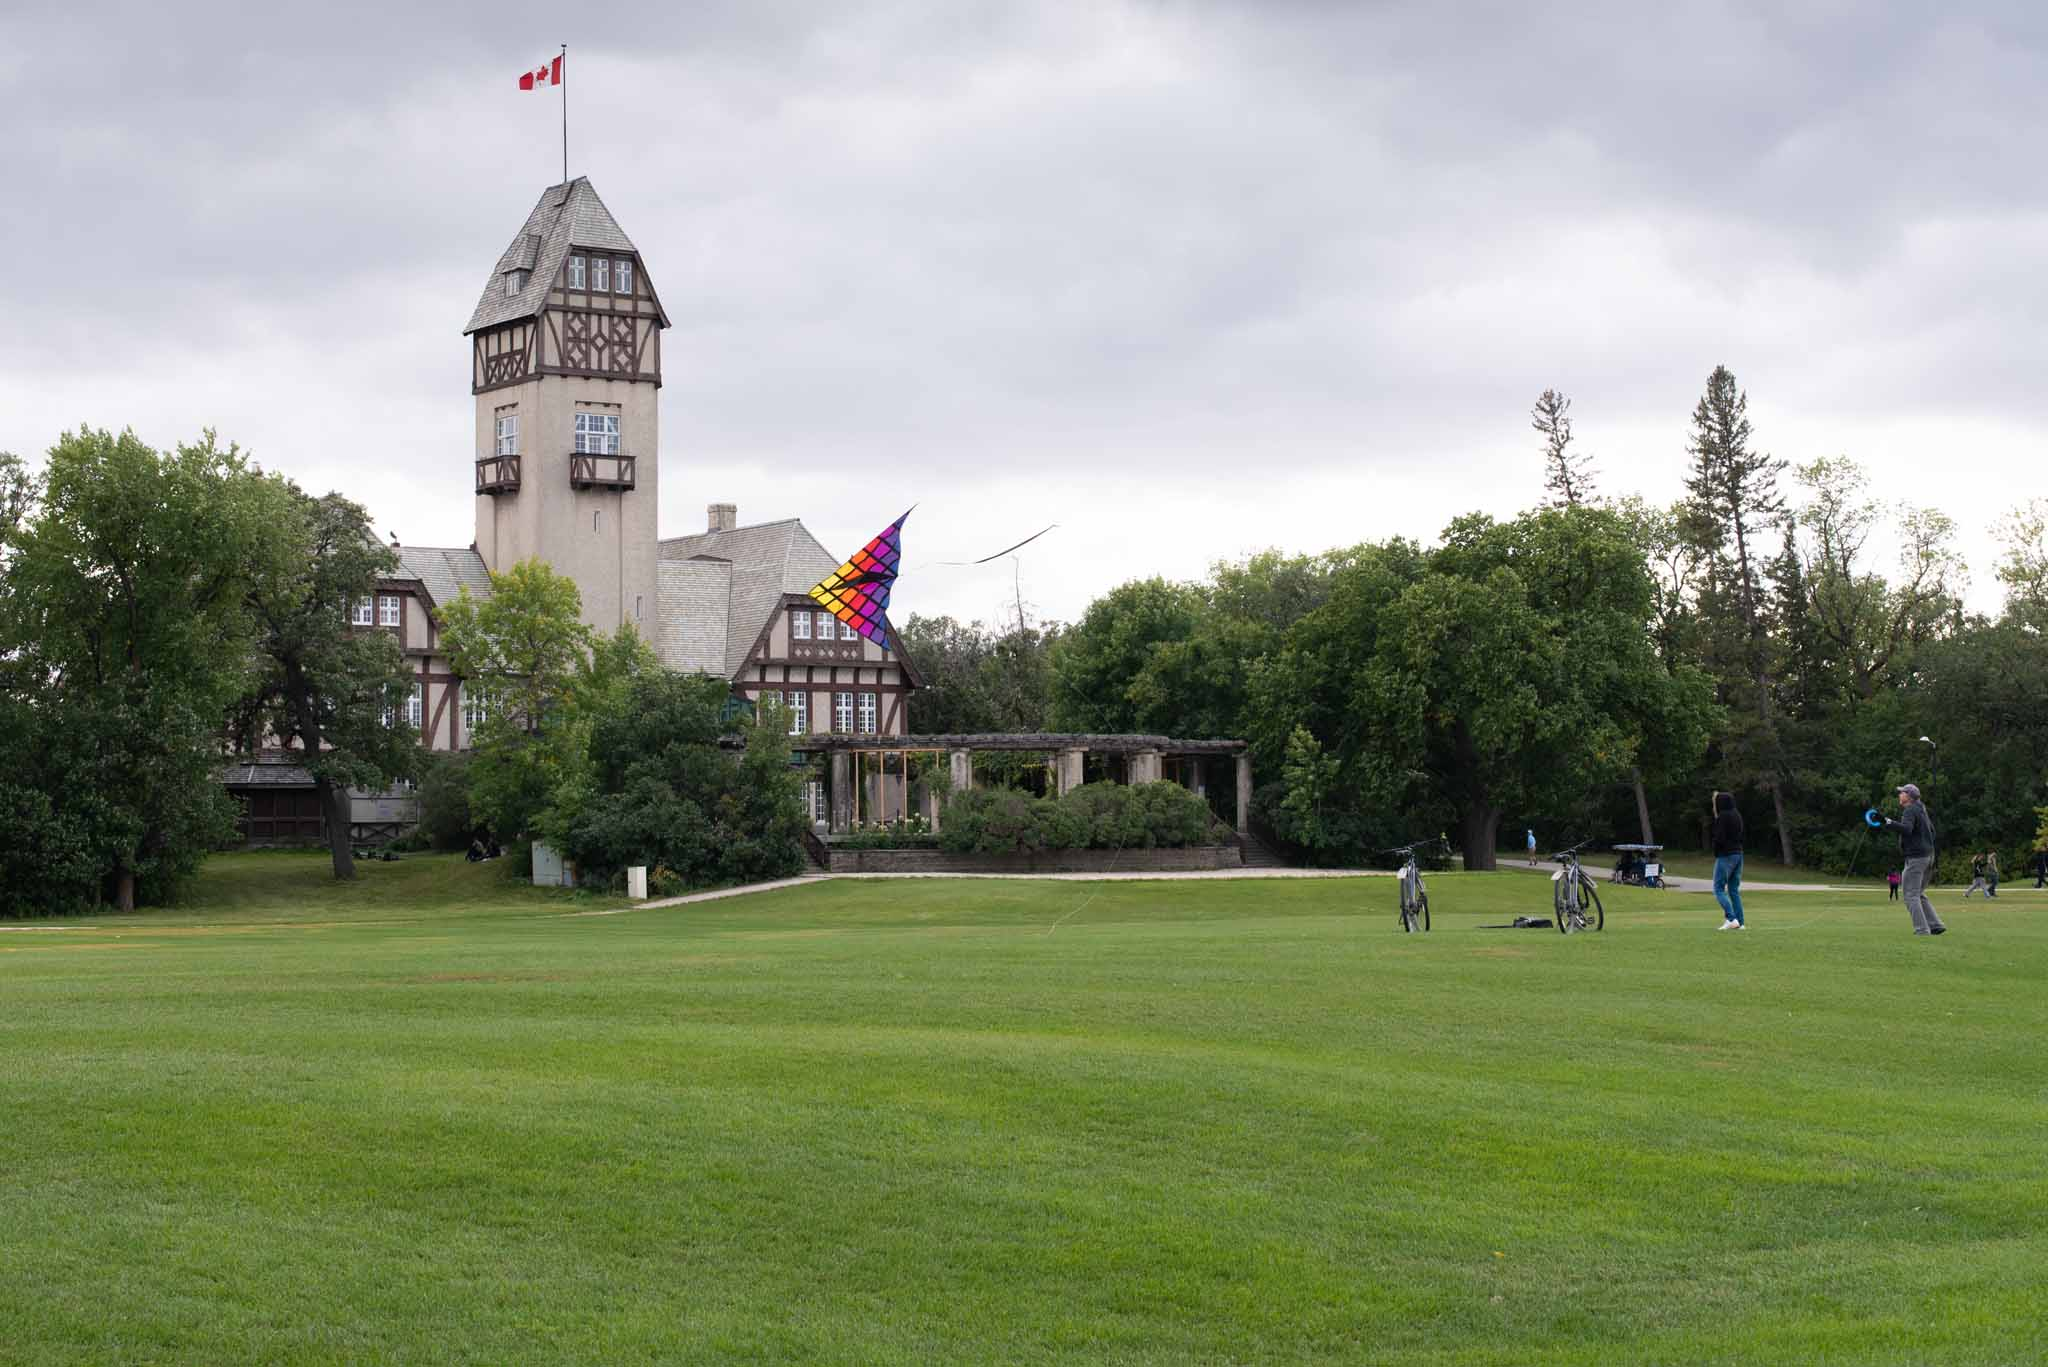 While Assiniboine Park might seem made for this pandemic moment, the connection between public parks and public health goes back to the 1800s.